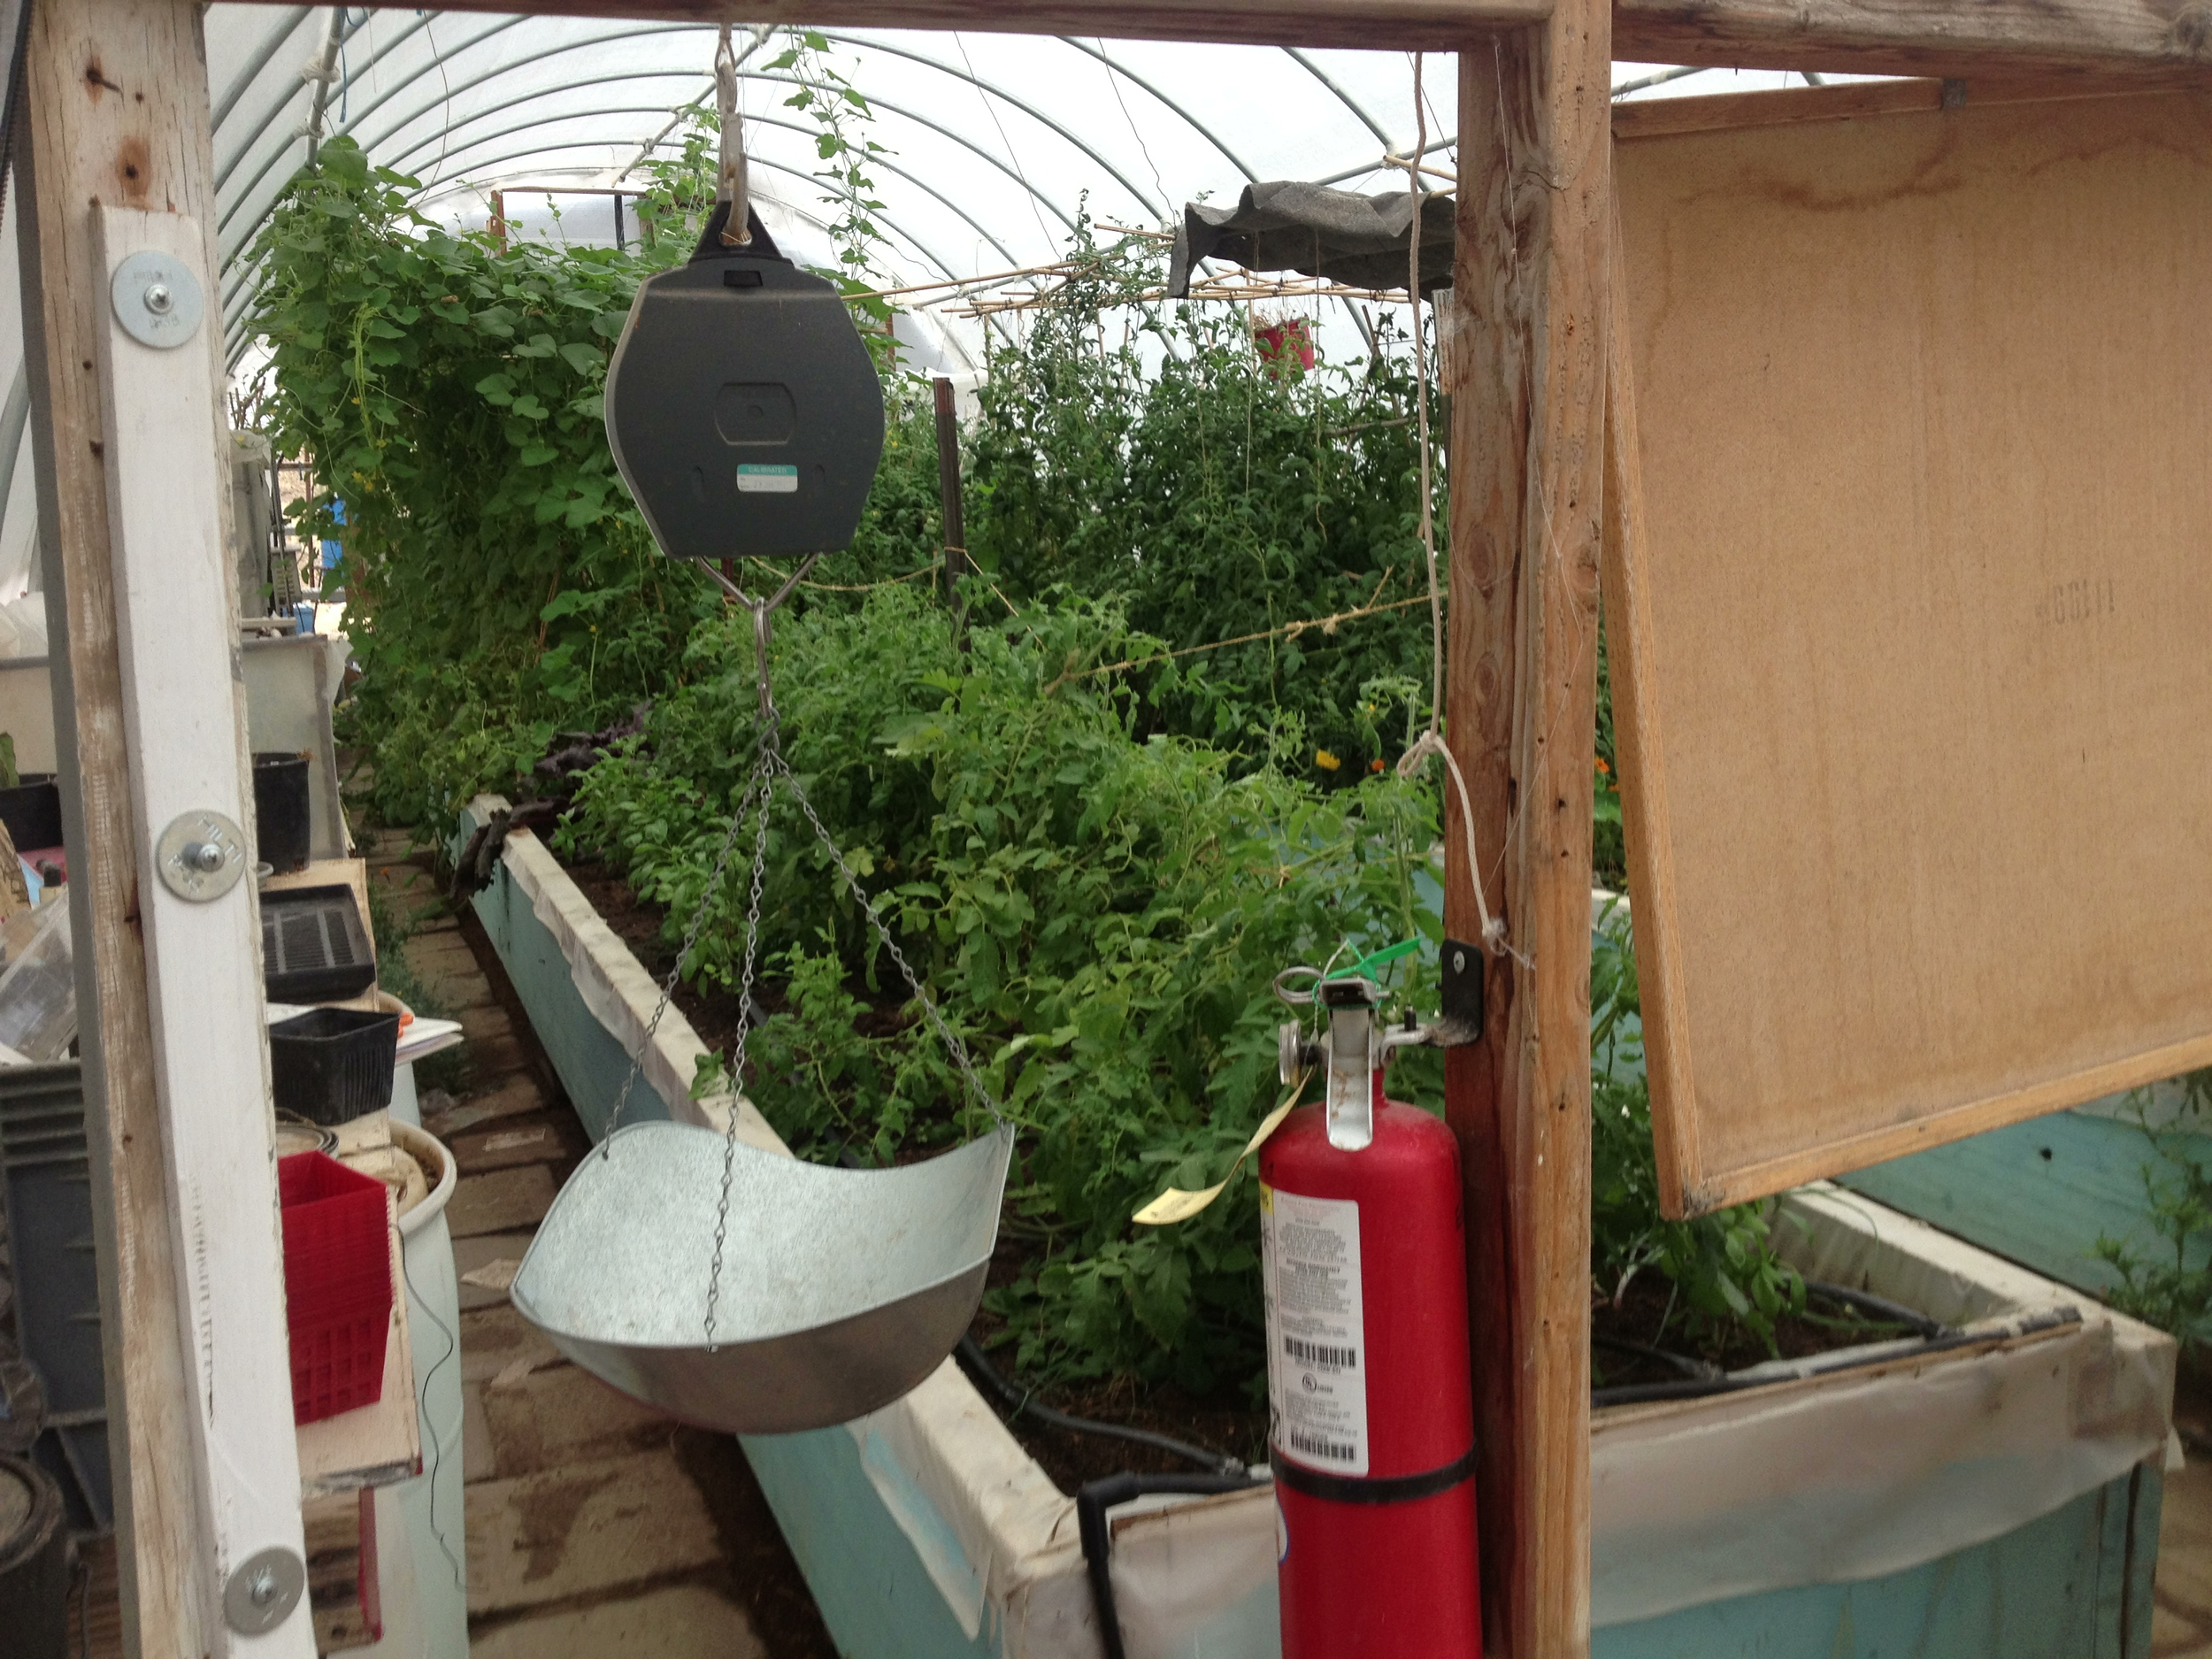 The lush interior of the test greenhouse.